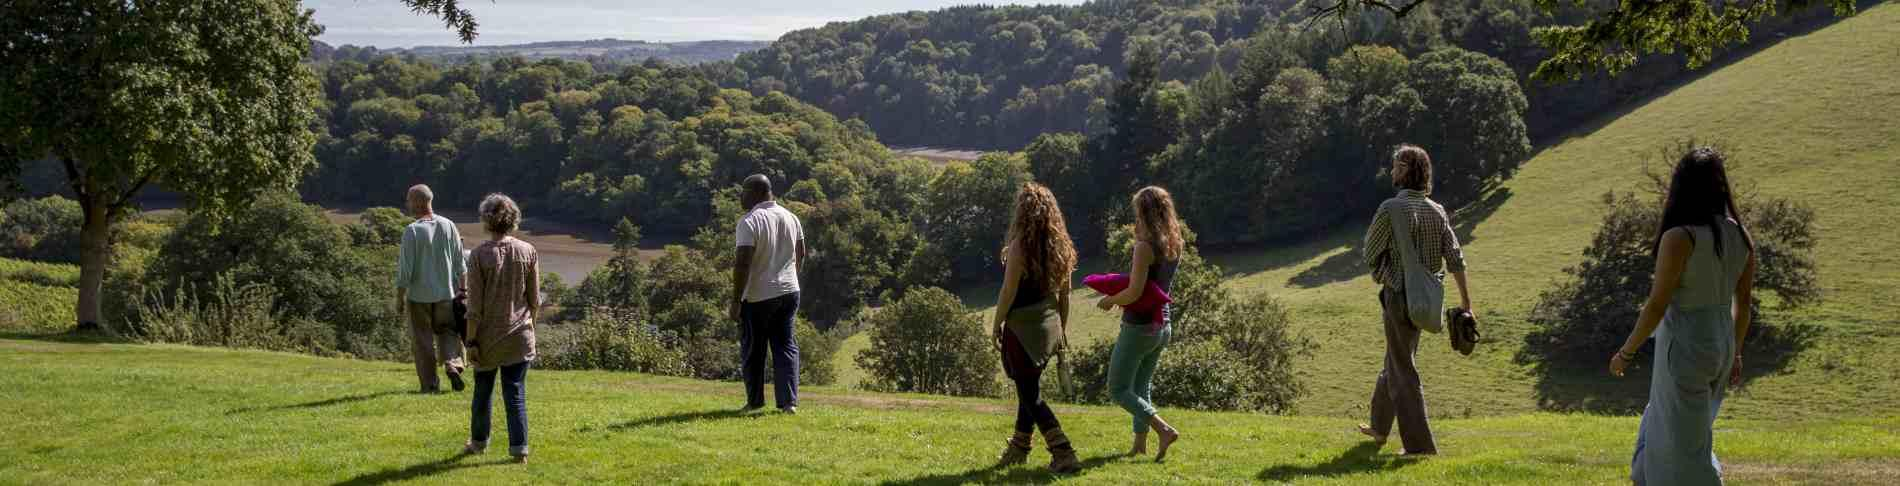 Mindfulness and walking - a retreat at Sharpham